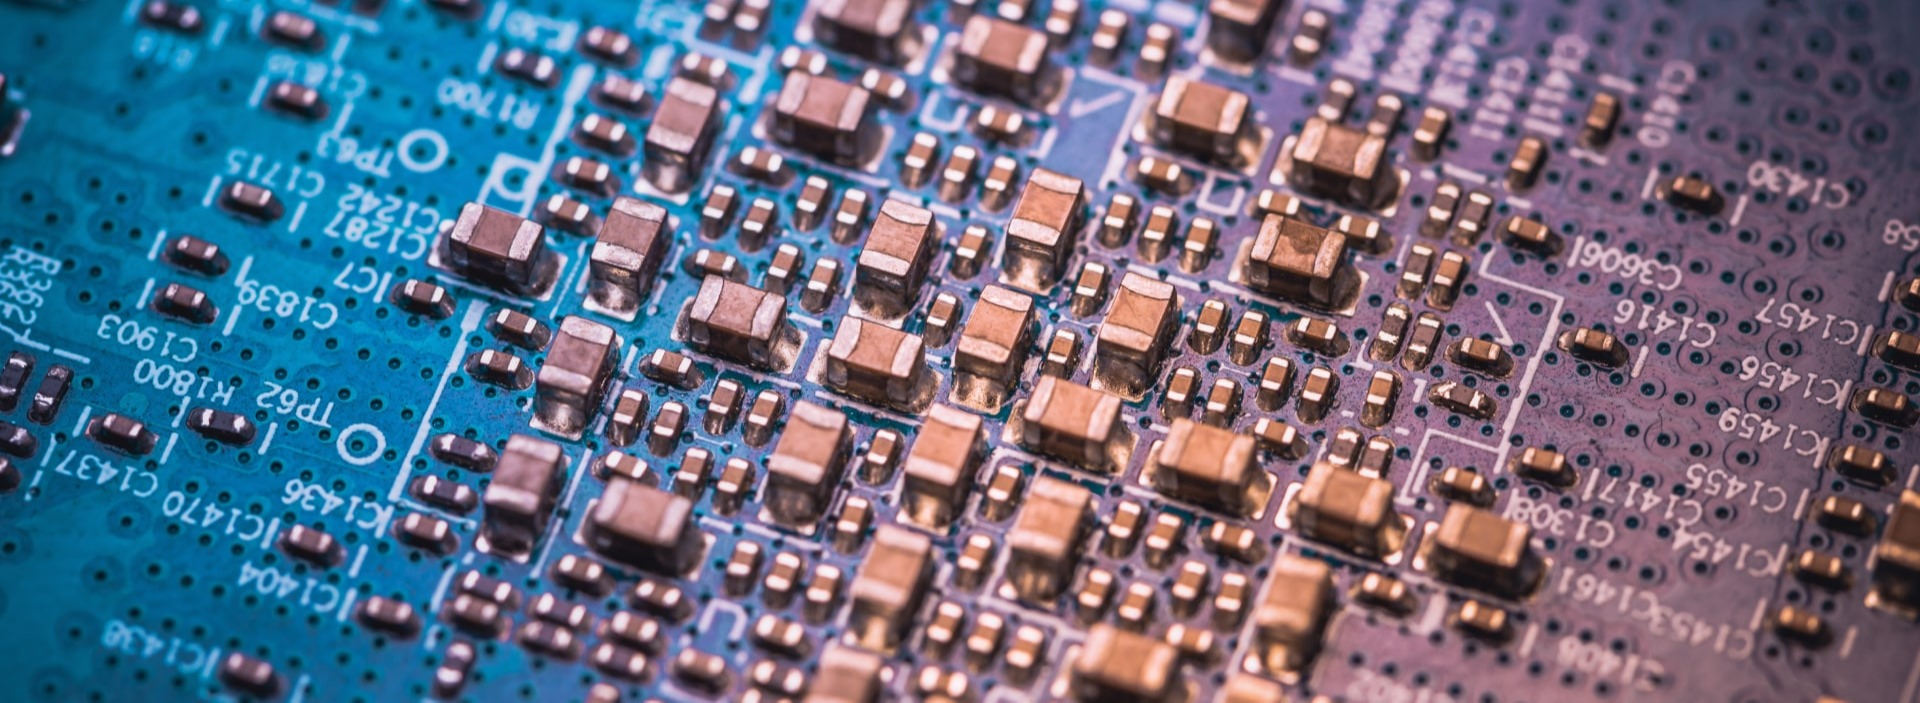 How to get the most value from embedded software development